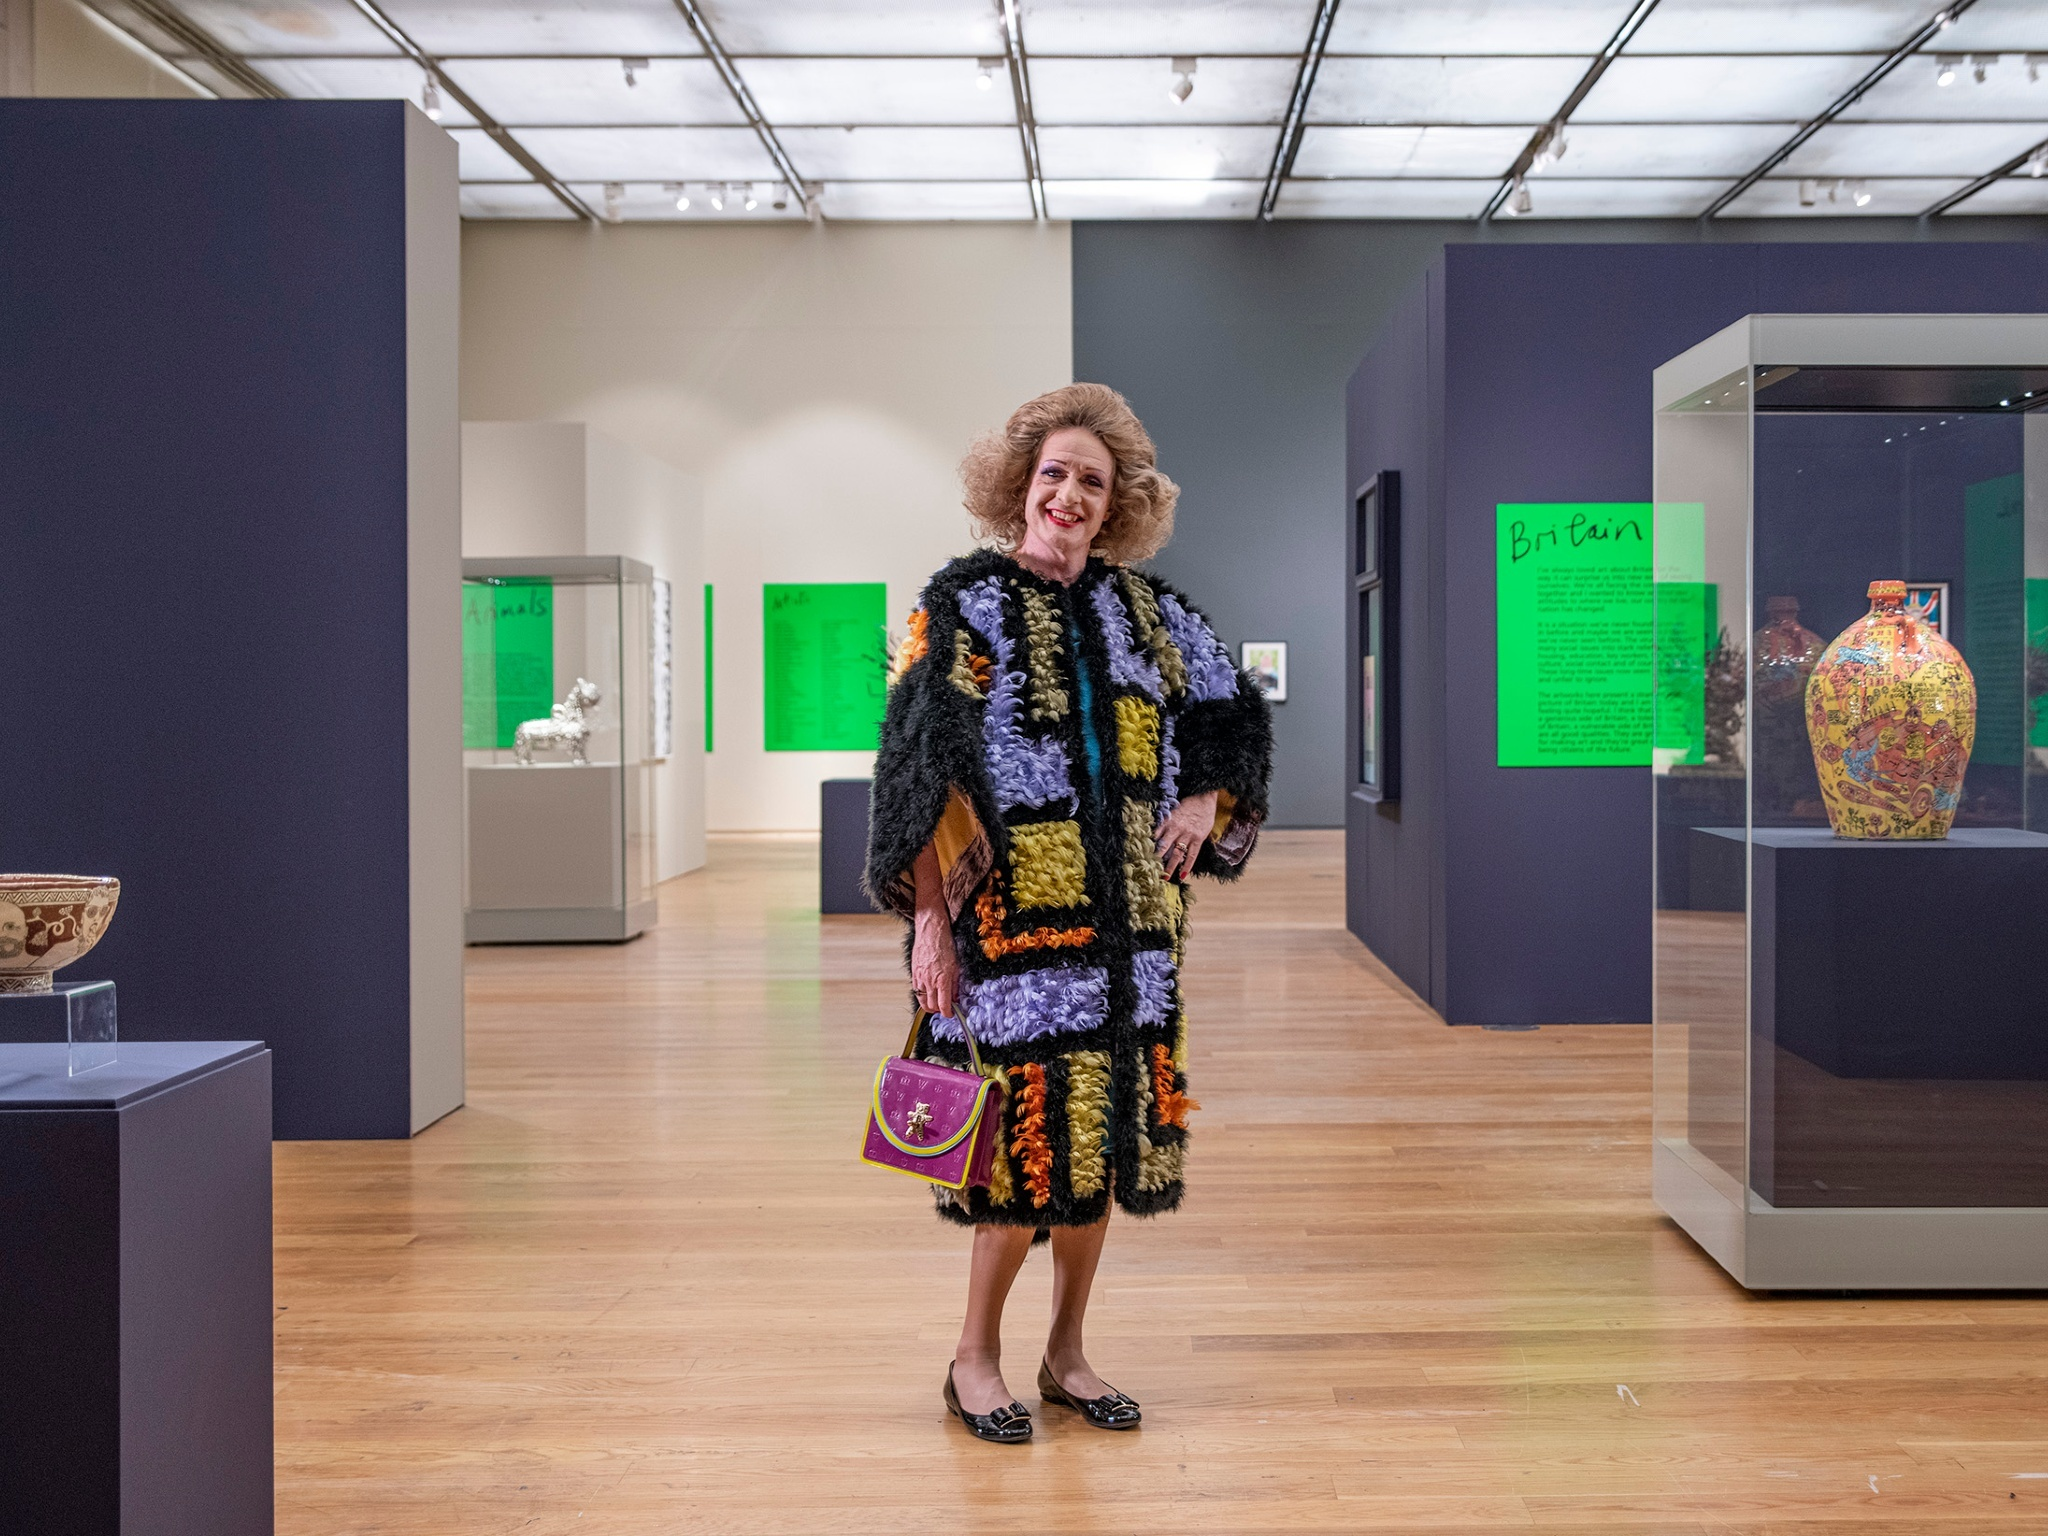 Grayson Perry in crotchet dress with wig and handbag inside gallery space